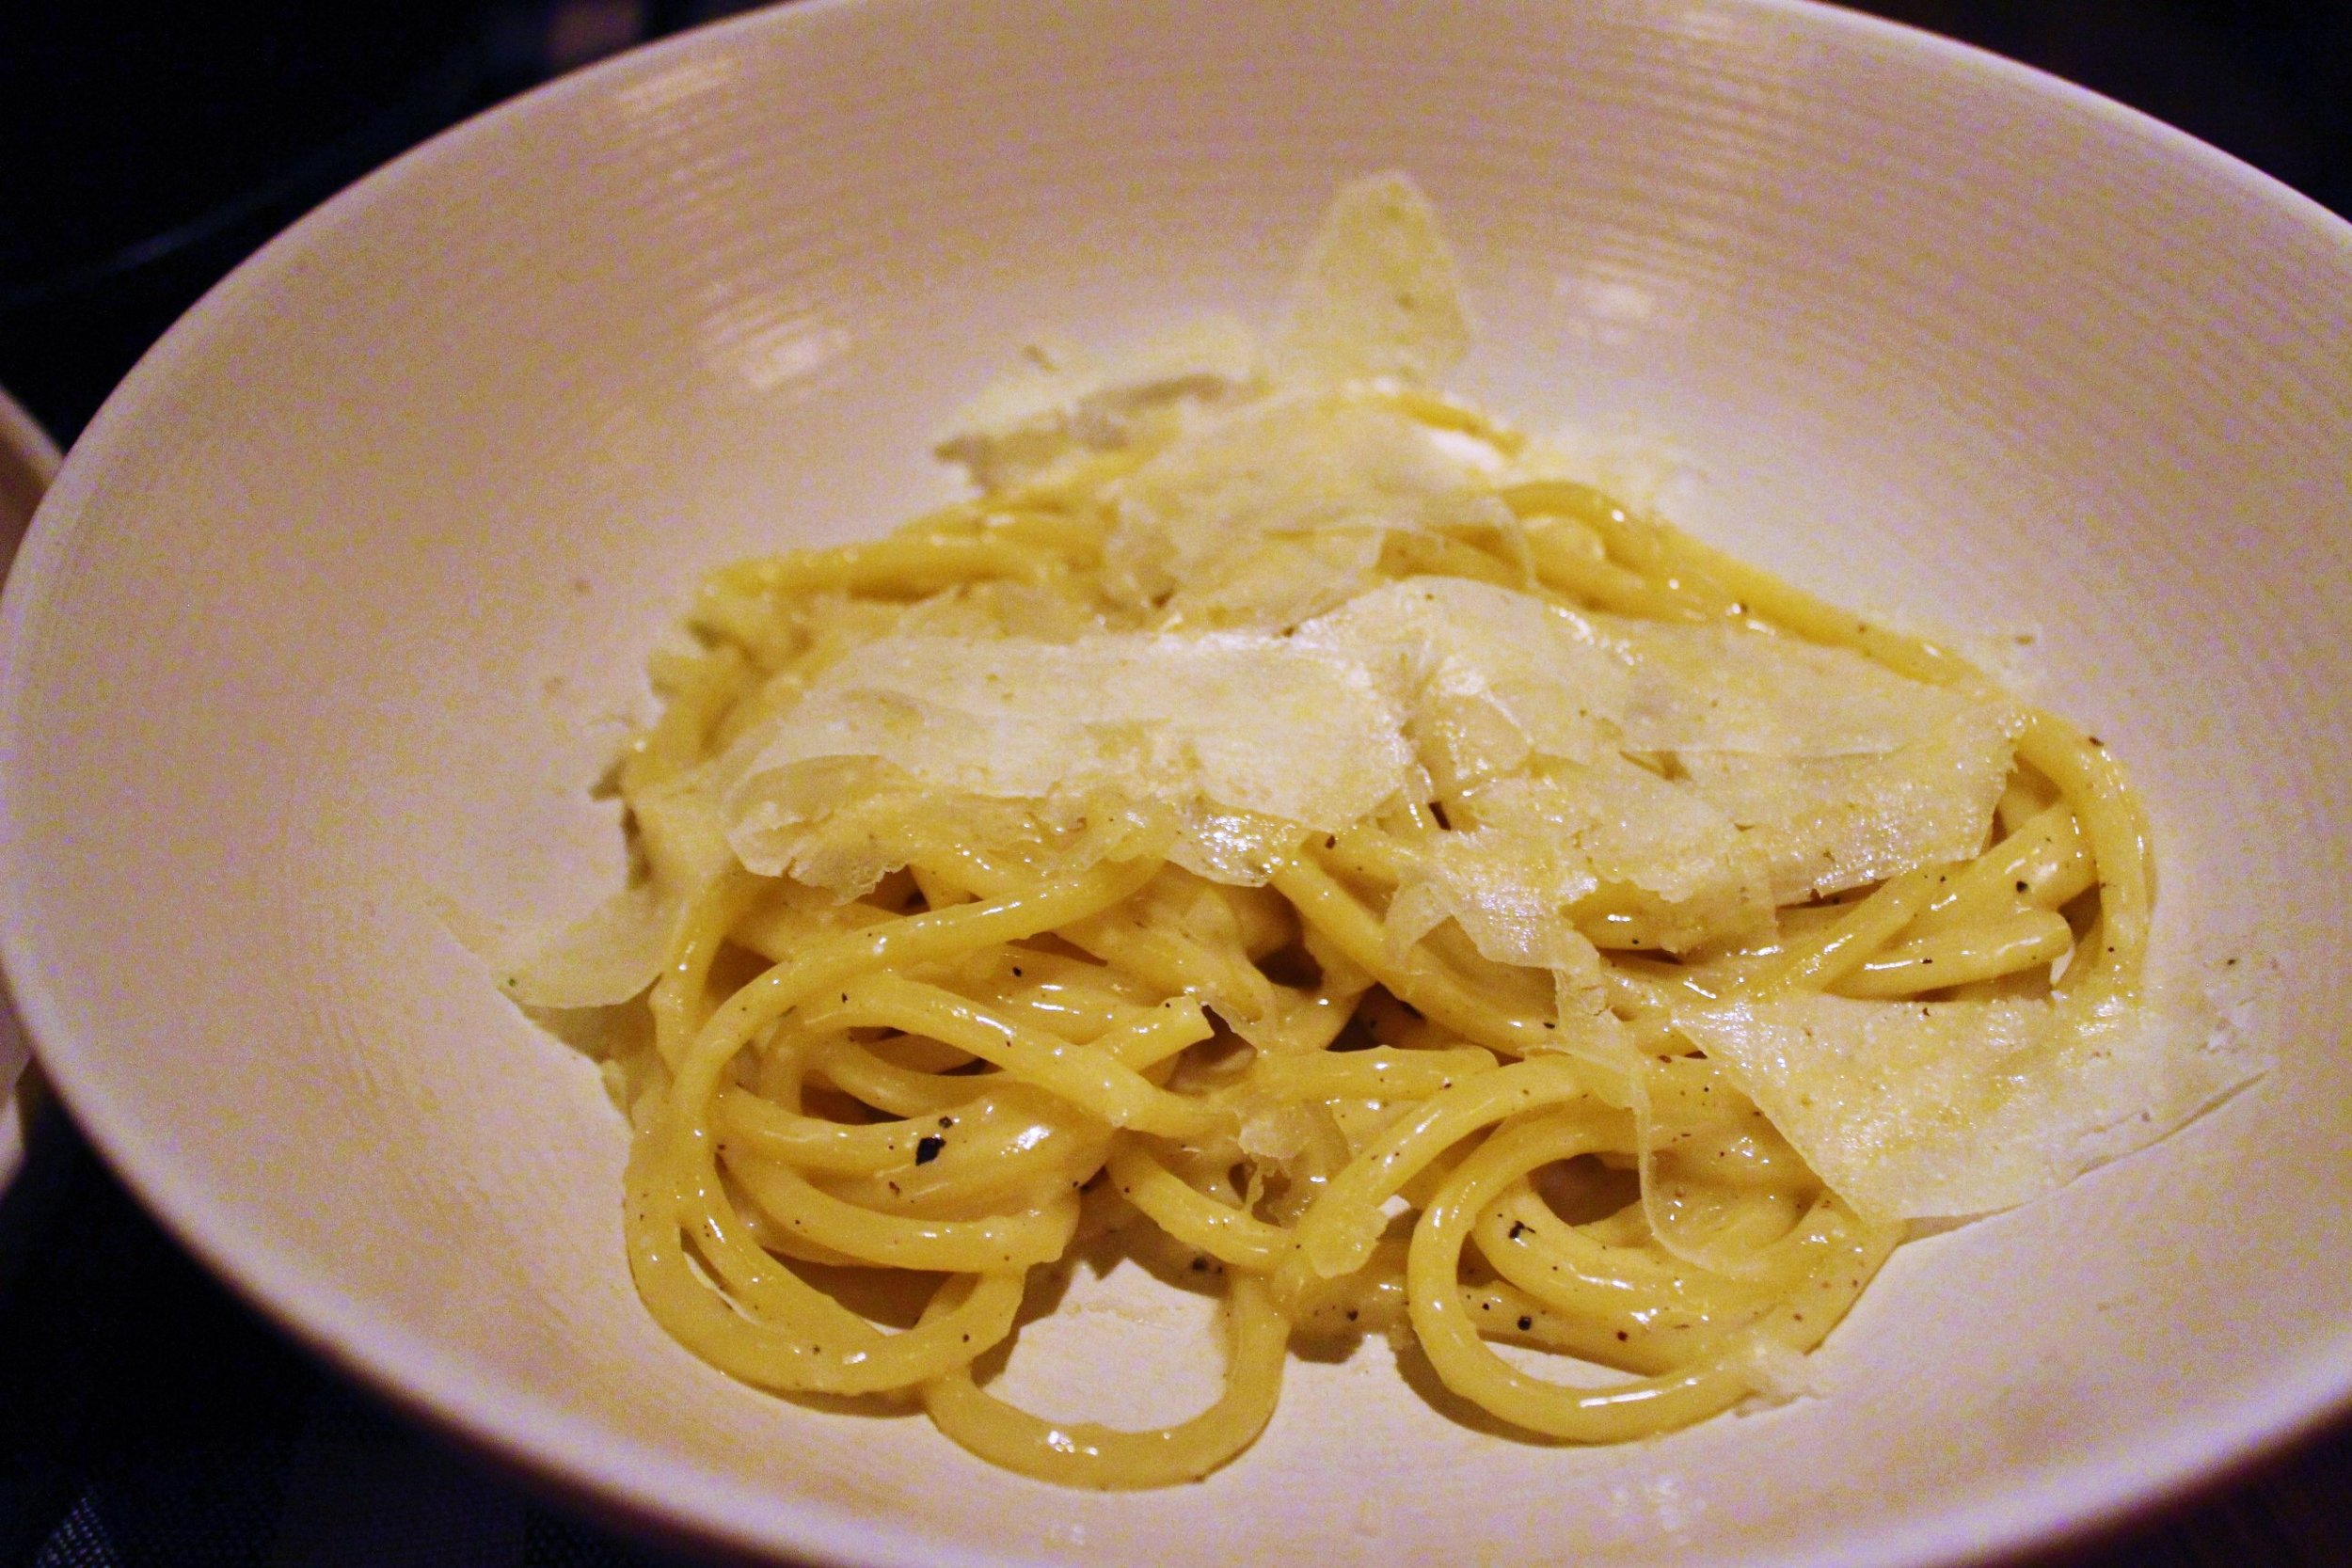 Bucatini Cacio e Pepe at Upland